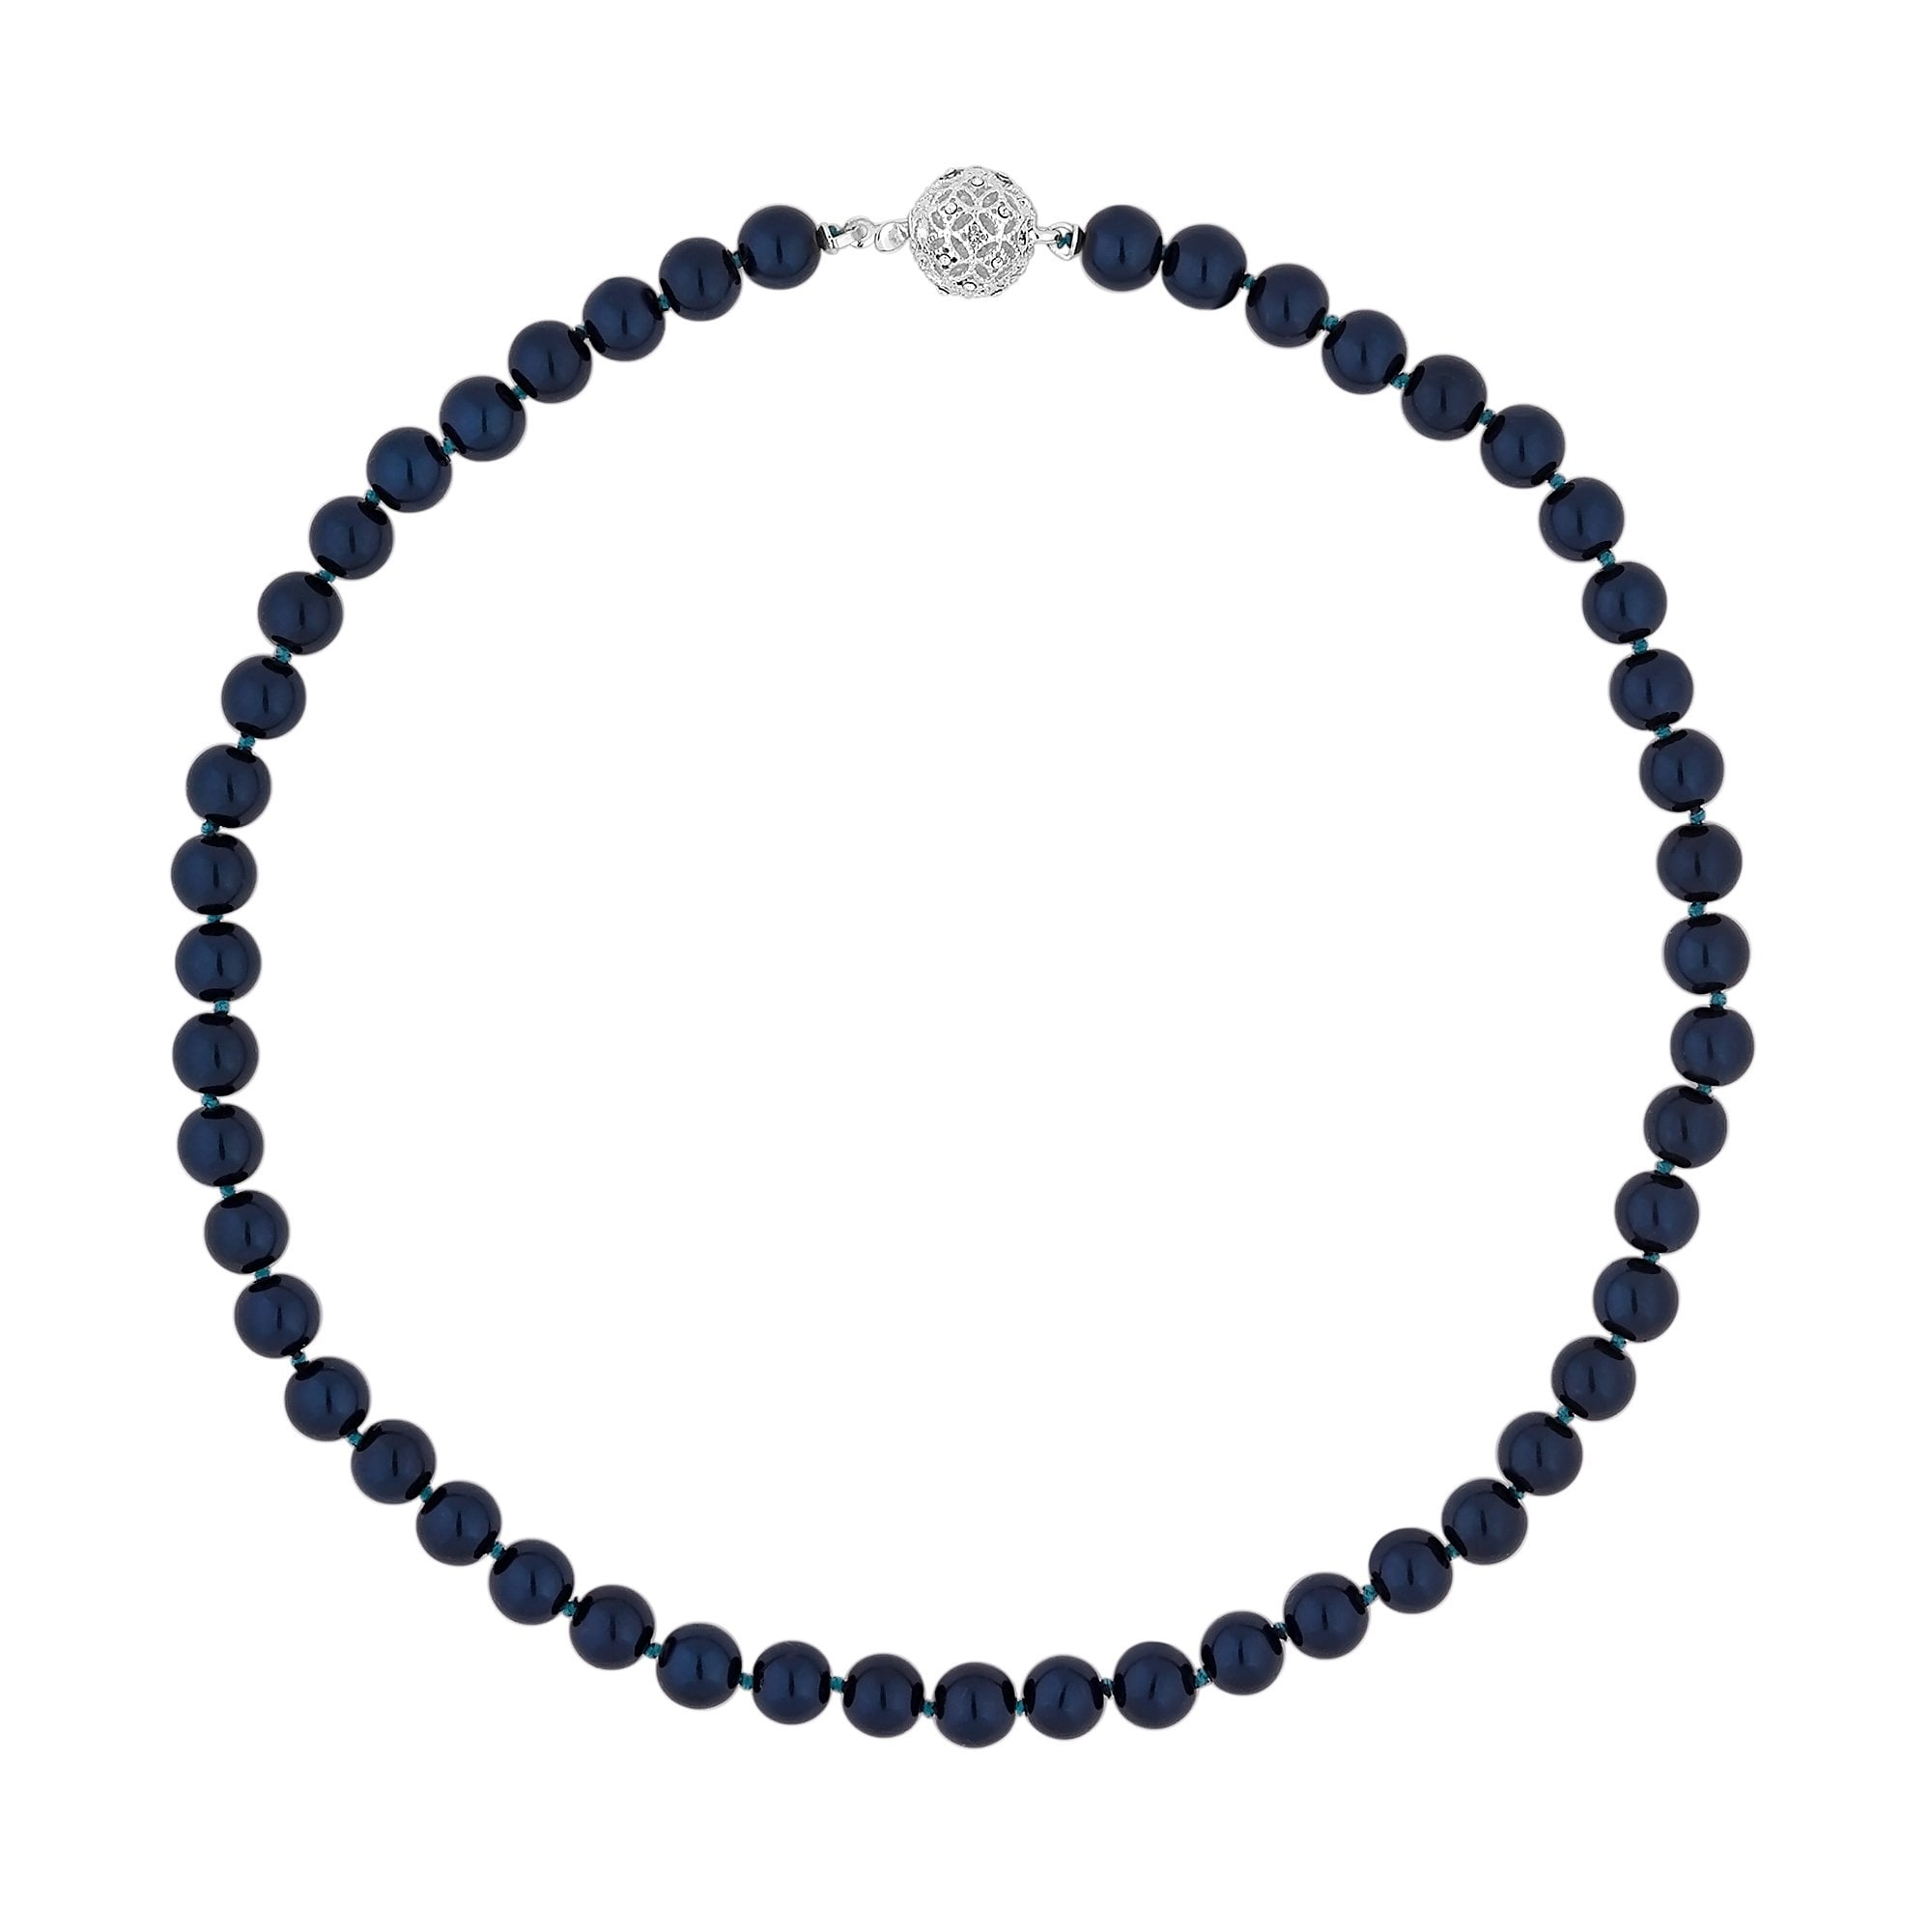 38c709a59 Jon Richard 17' Navy Blue Pearl Necklace With Filigree Ball ...